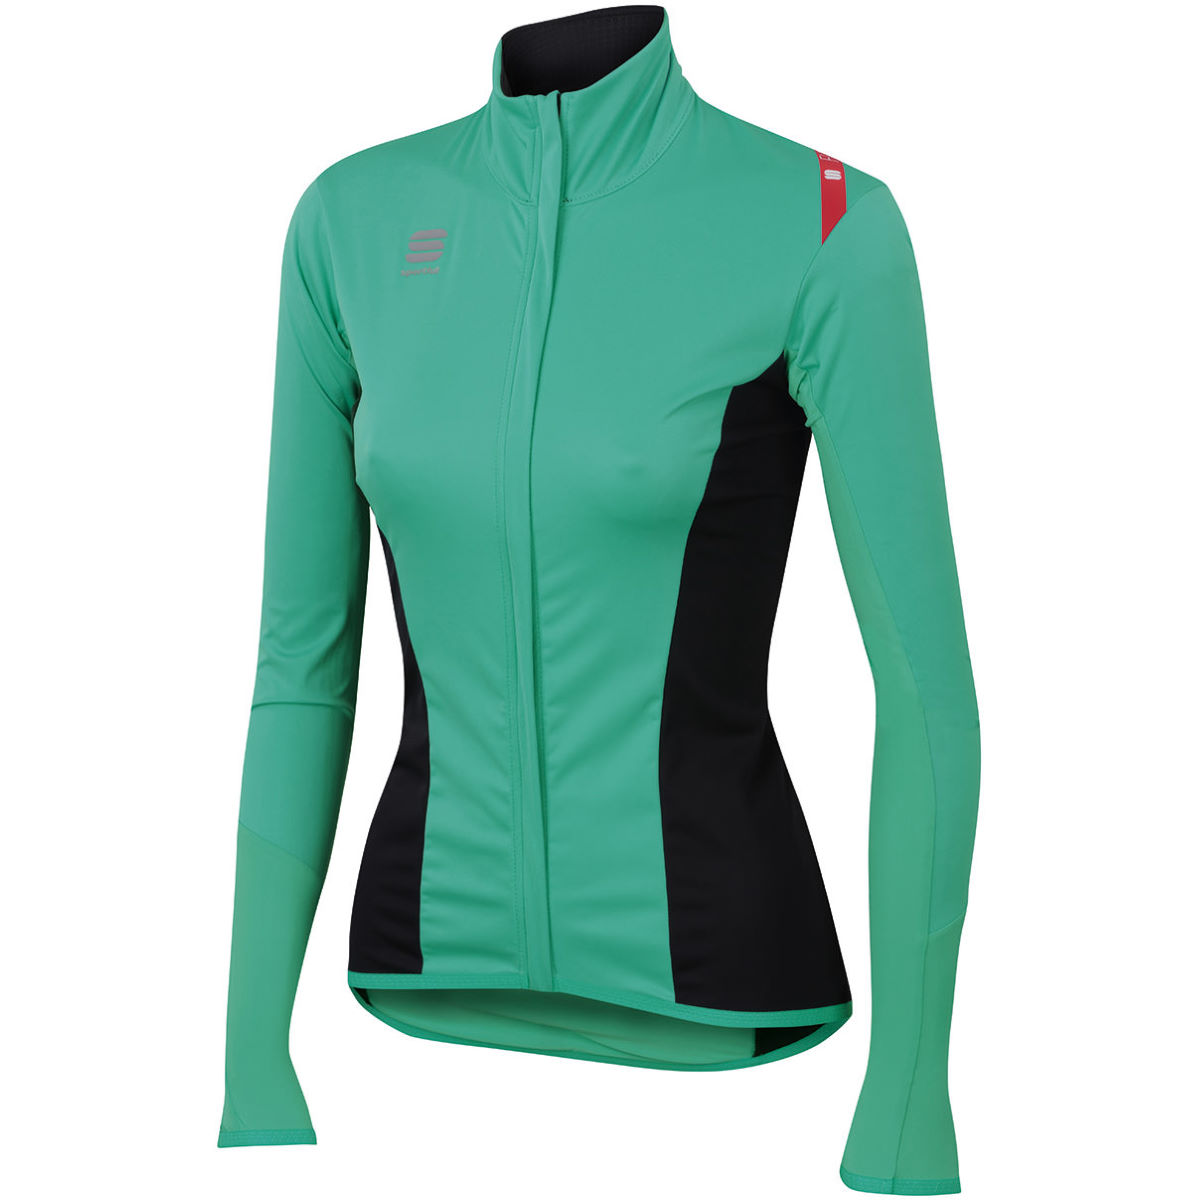 Maillot Femme Sportful Fiandre Light NoRain - M Waterfall Maillots